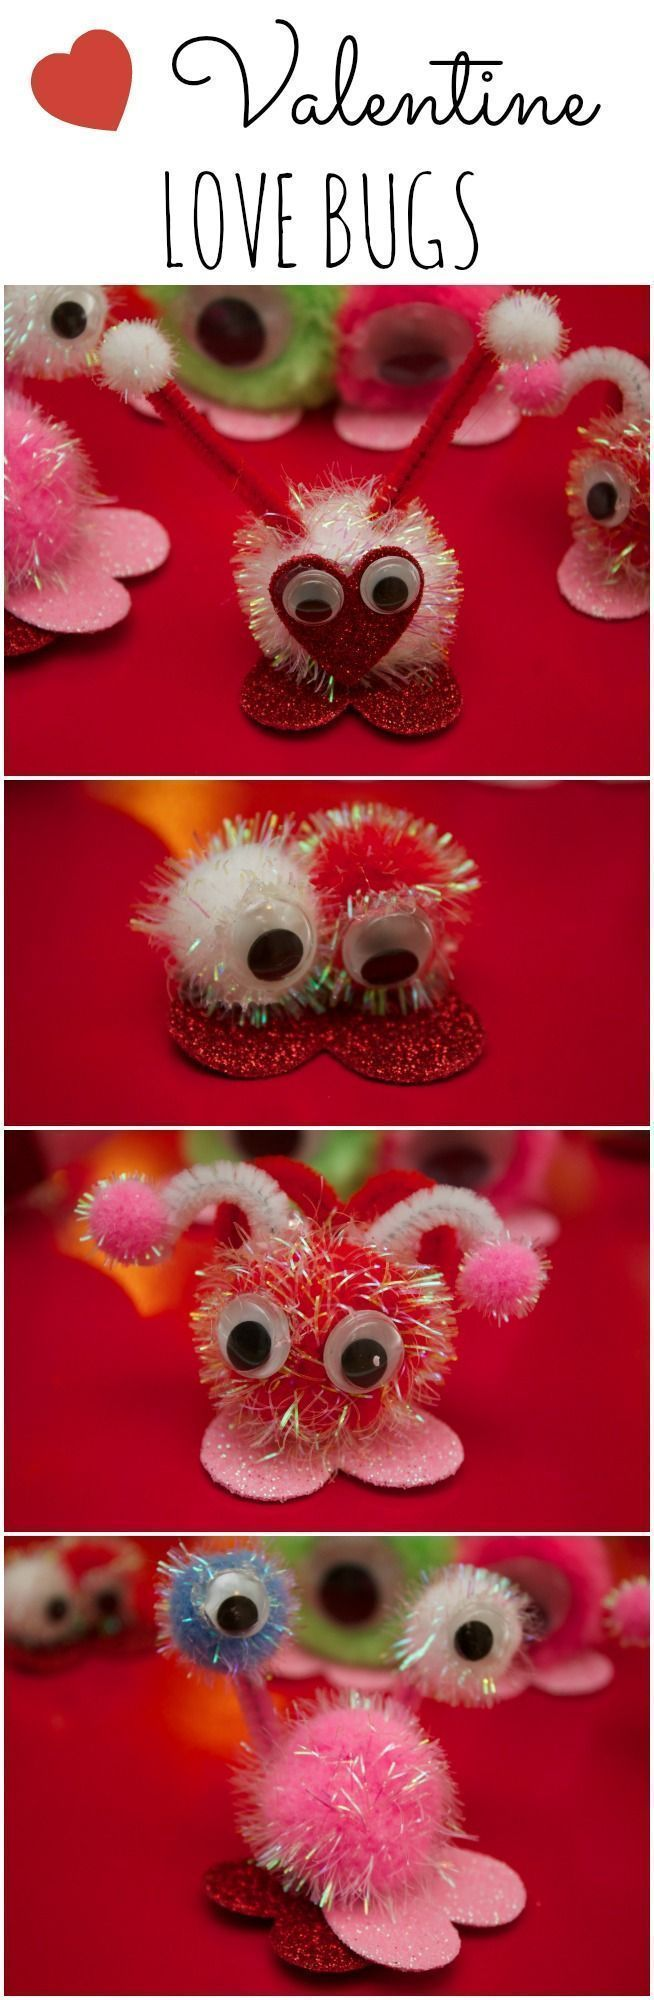 88 Best Love One Another Crafts Images On Pinterest  Diy -2950